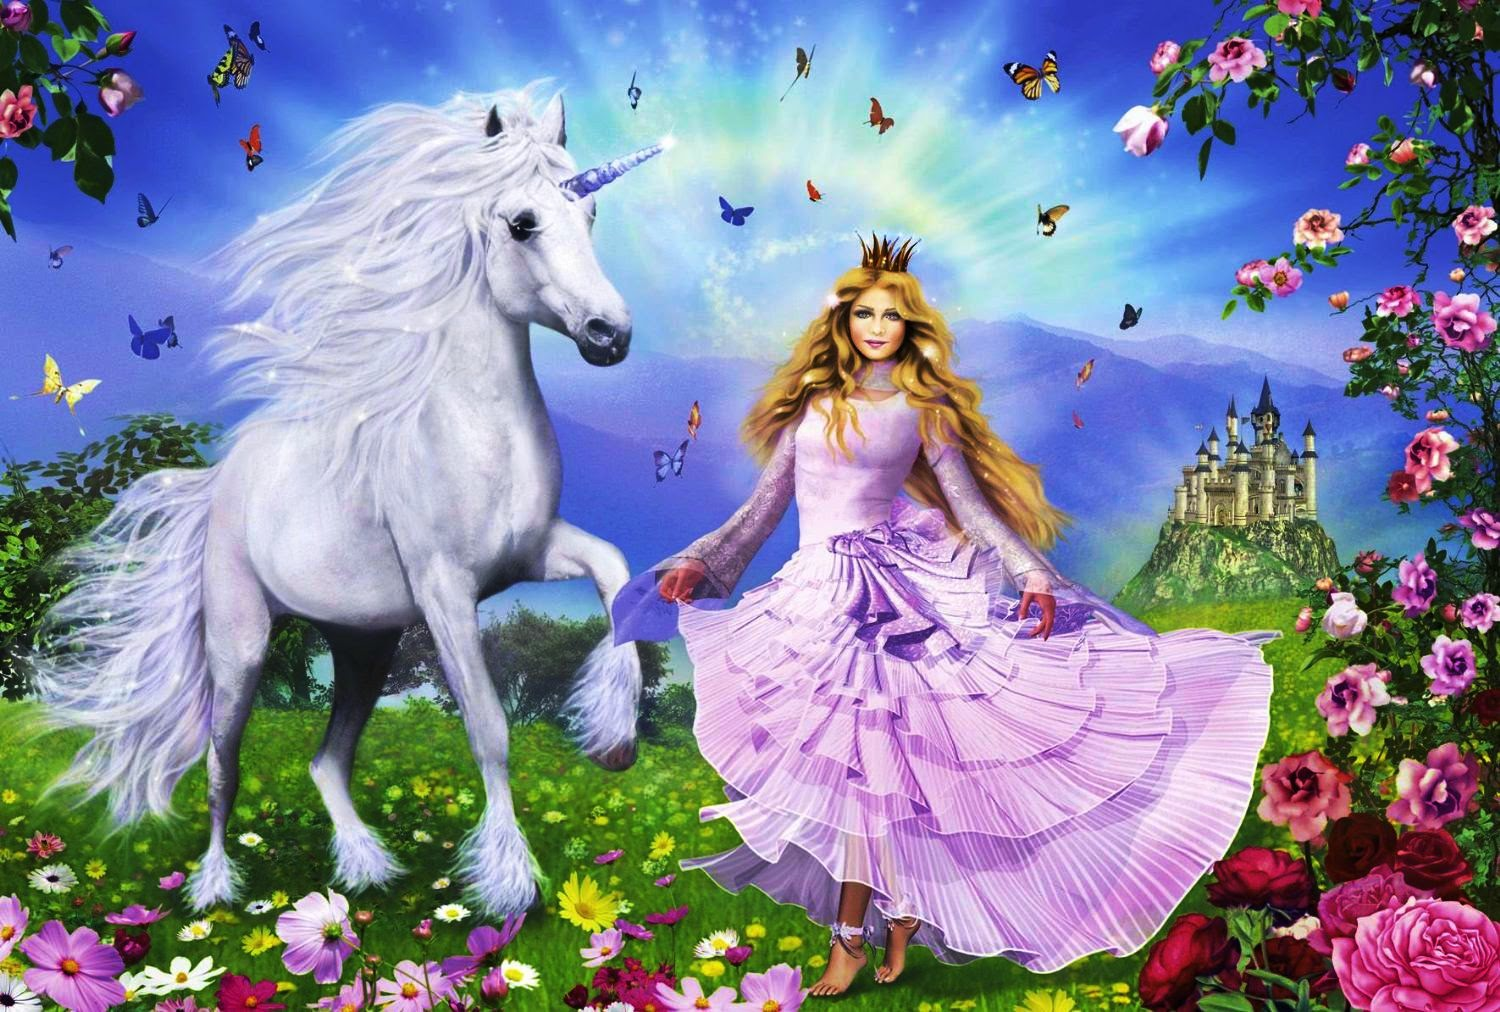 Unicorn-with-princess-castle-painting-drawings-picture-1500x1012.jpg